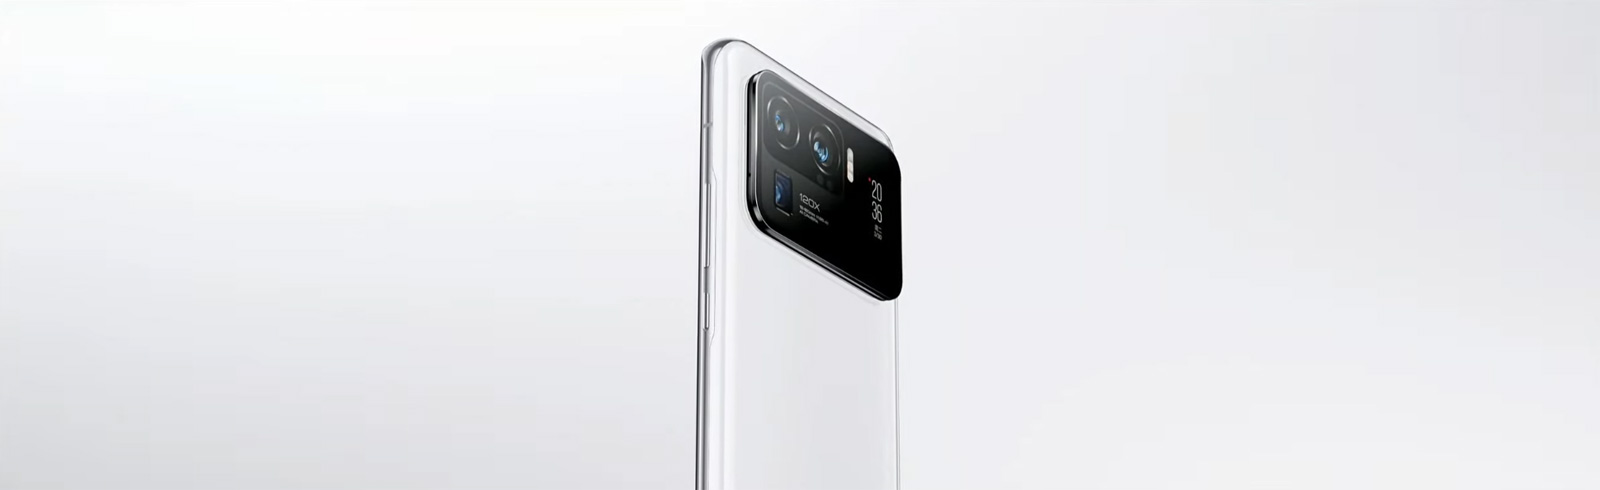 Xiaomi 11 Ultra is unveiled - specifications and prices